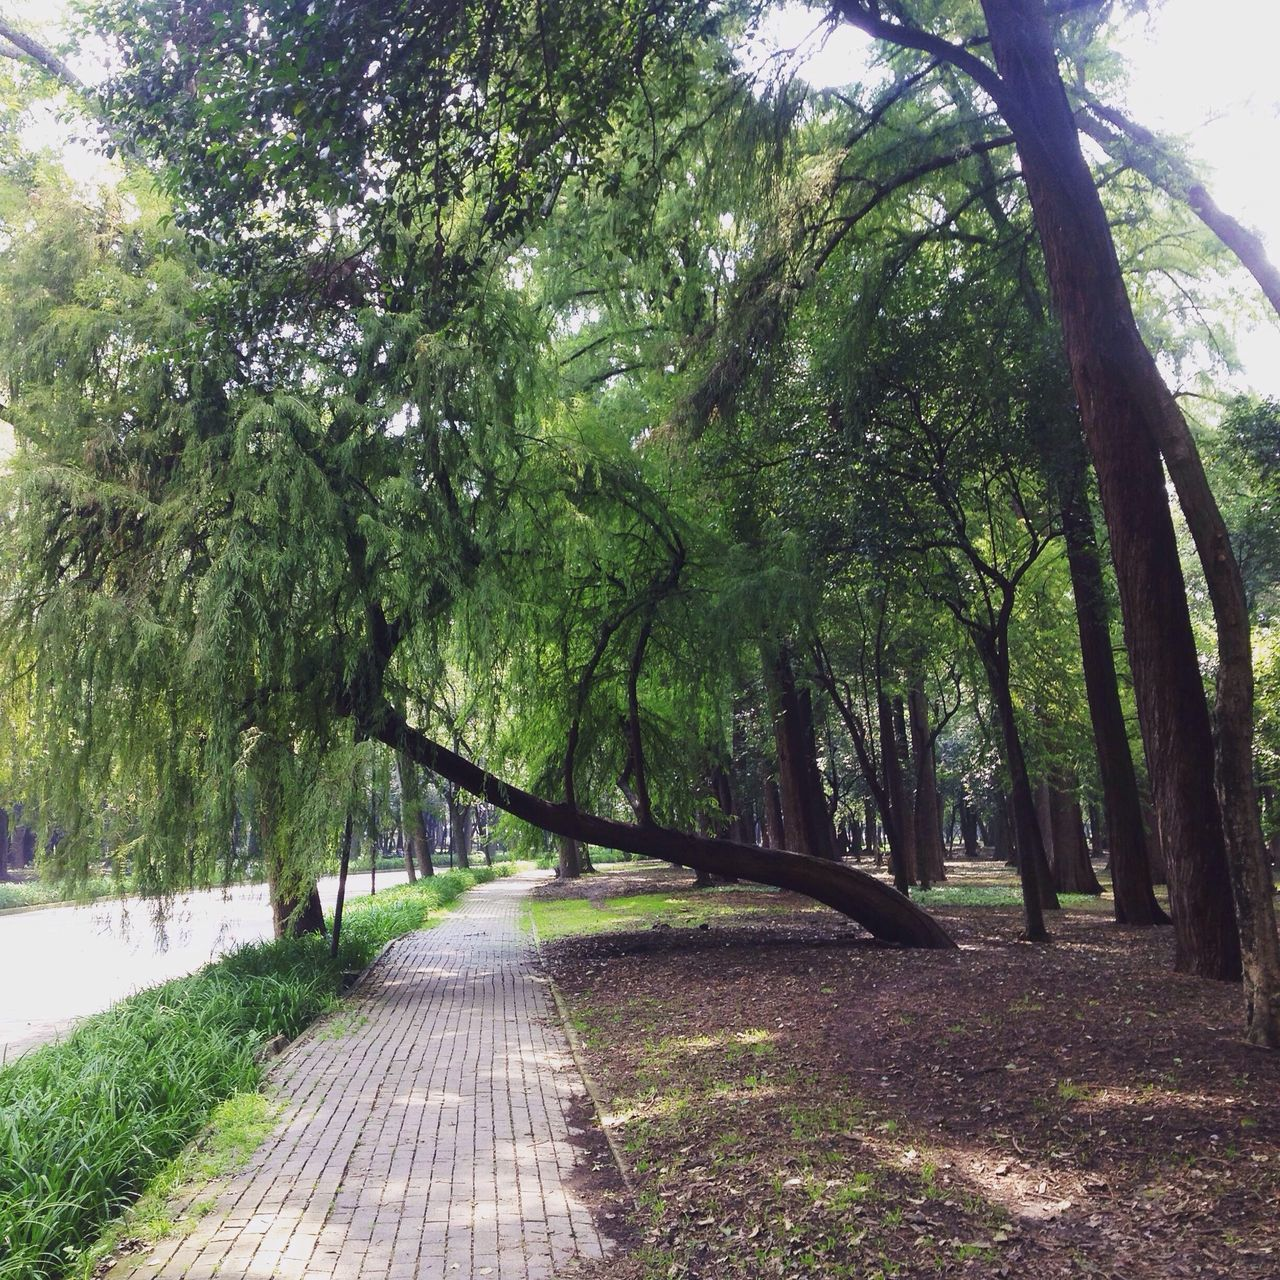 Tree Nature The Way Forward Growth Outdoors No People Day Landscape Beauty In Nature View Trees Branch Freshness Mexico City Cdmx Chapultepec Latin America